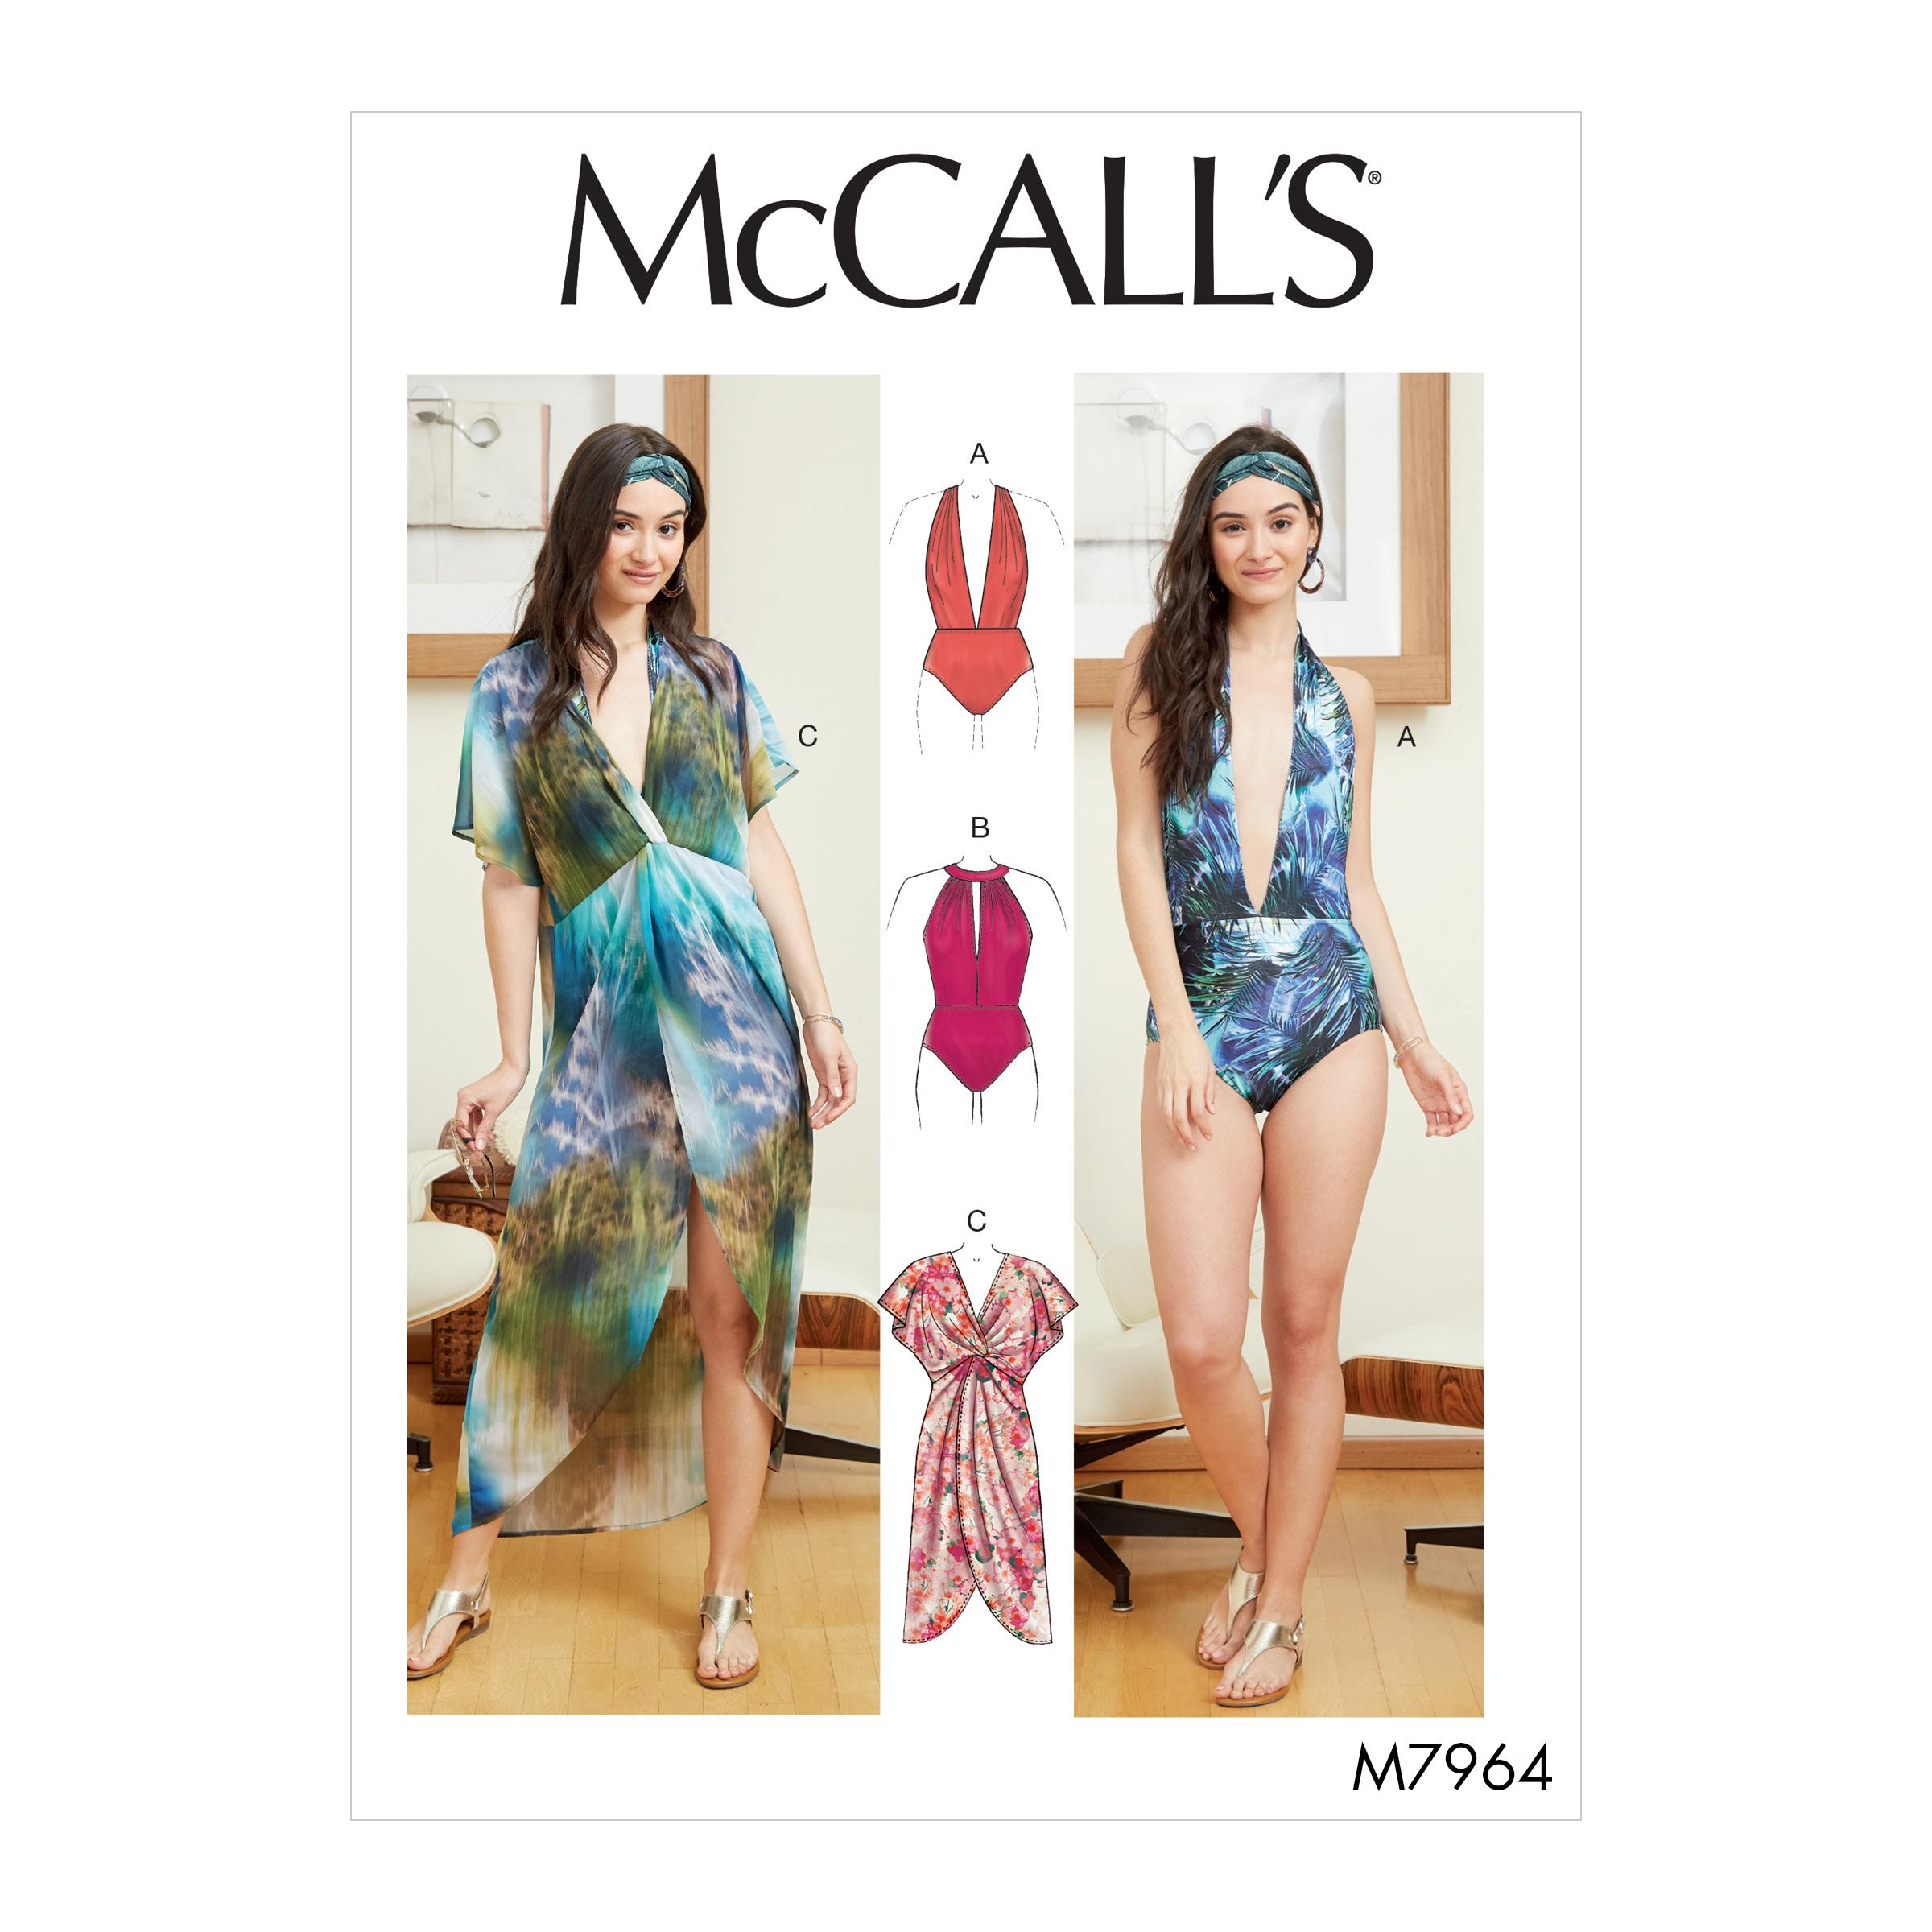 McCalls M7964 Misses Swim & Activewear